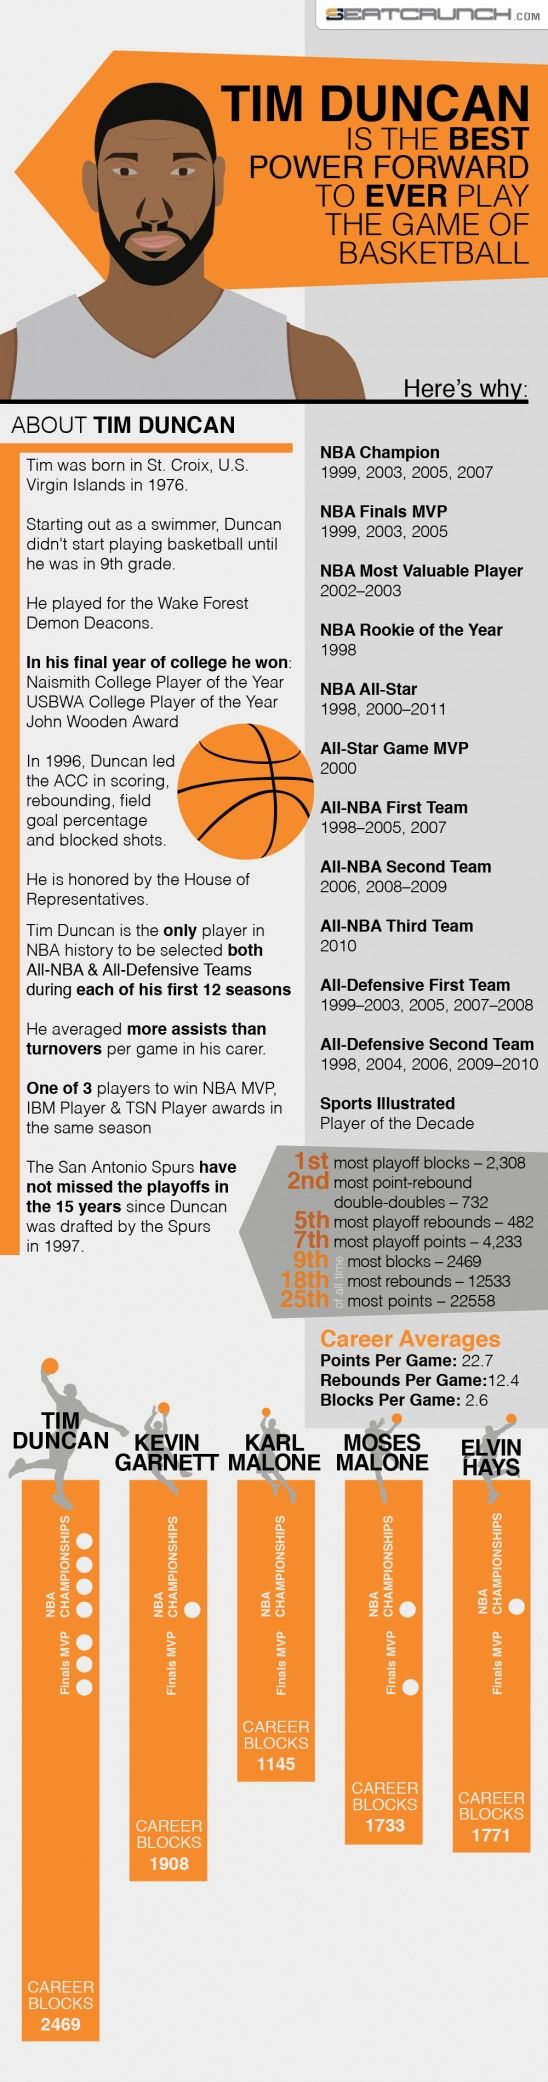 Tim Duncan: Greatest Power Forward Of All Time